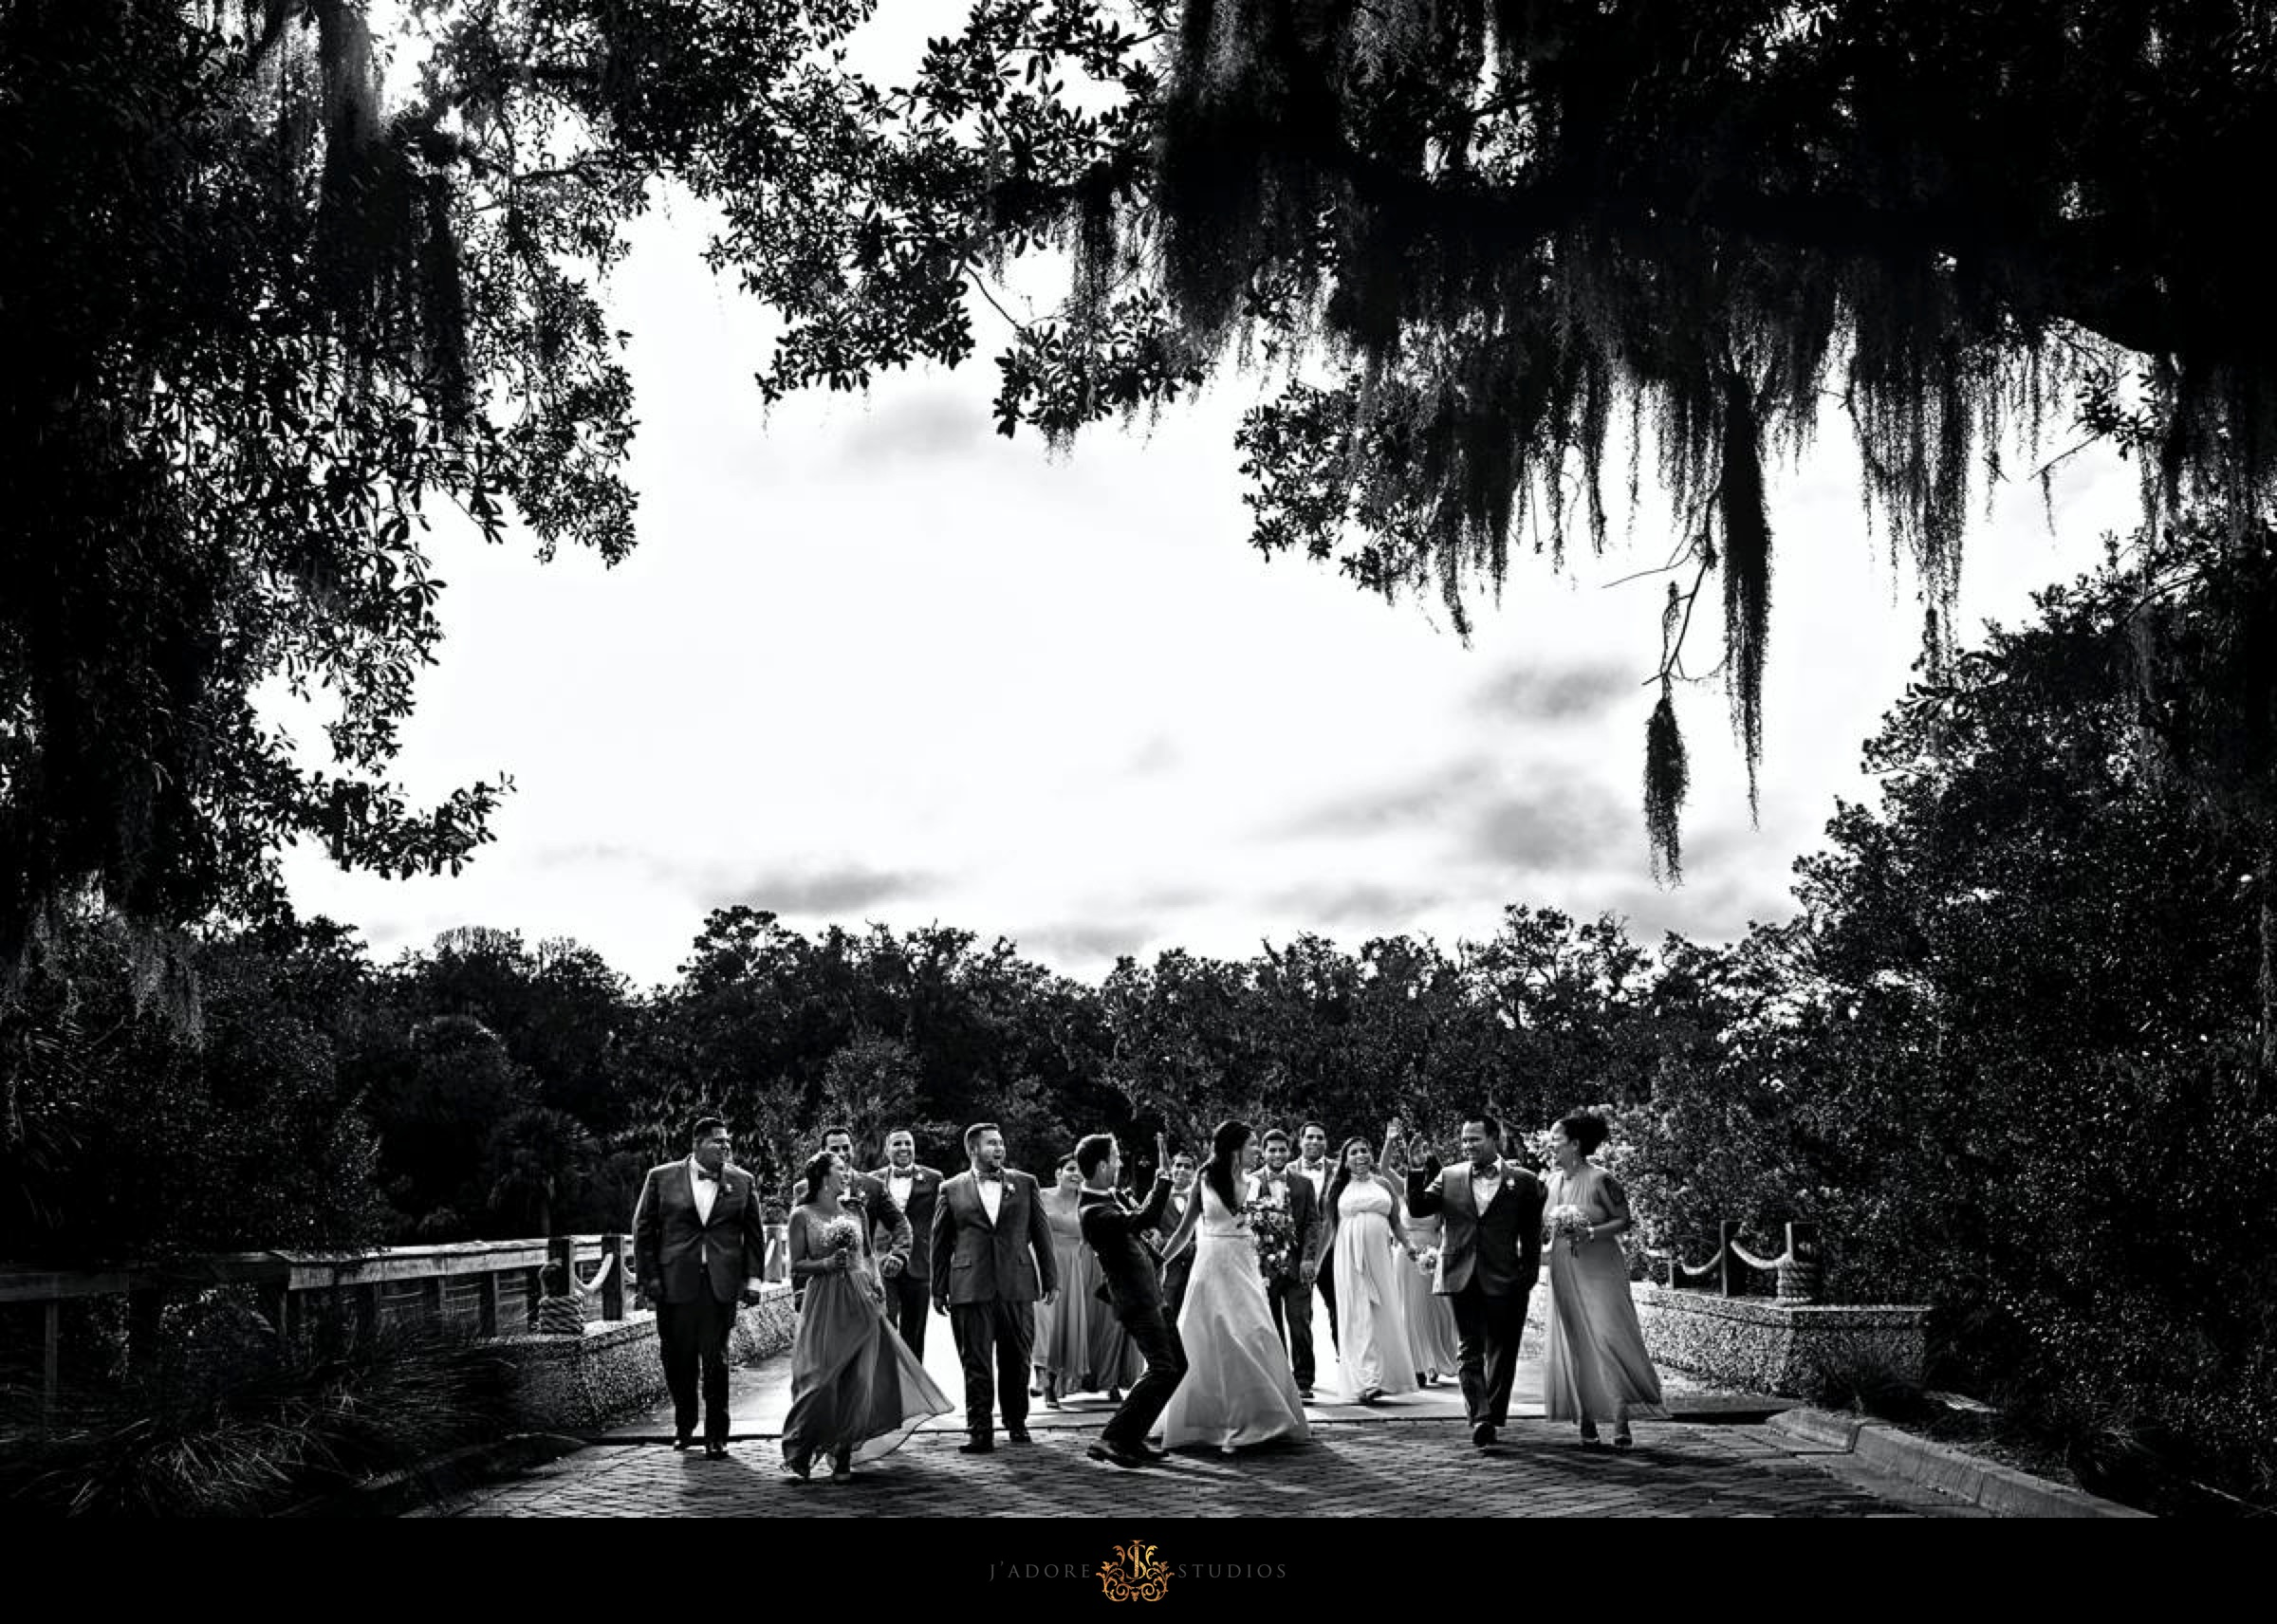 Bridal party having fun on the bridge under mossy trees at Oyster Bay Yacht Club